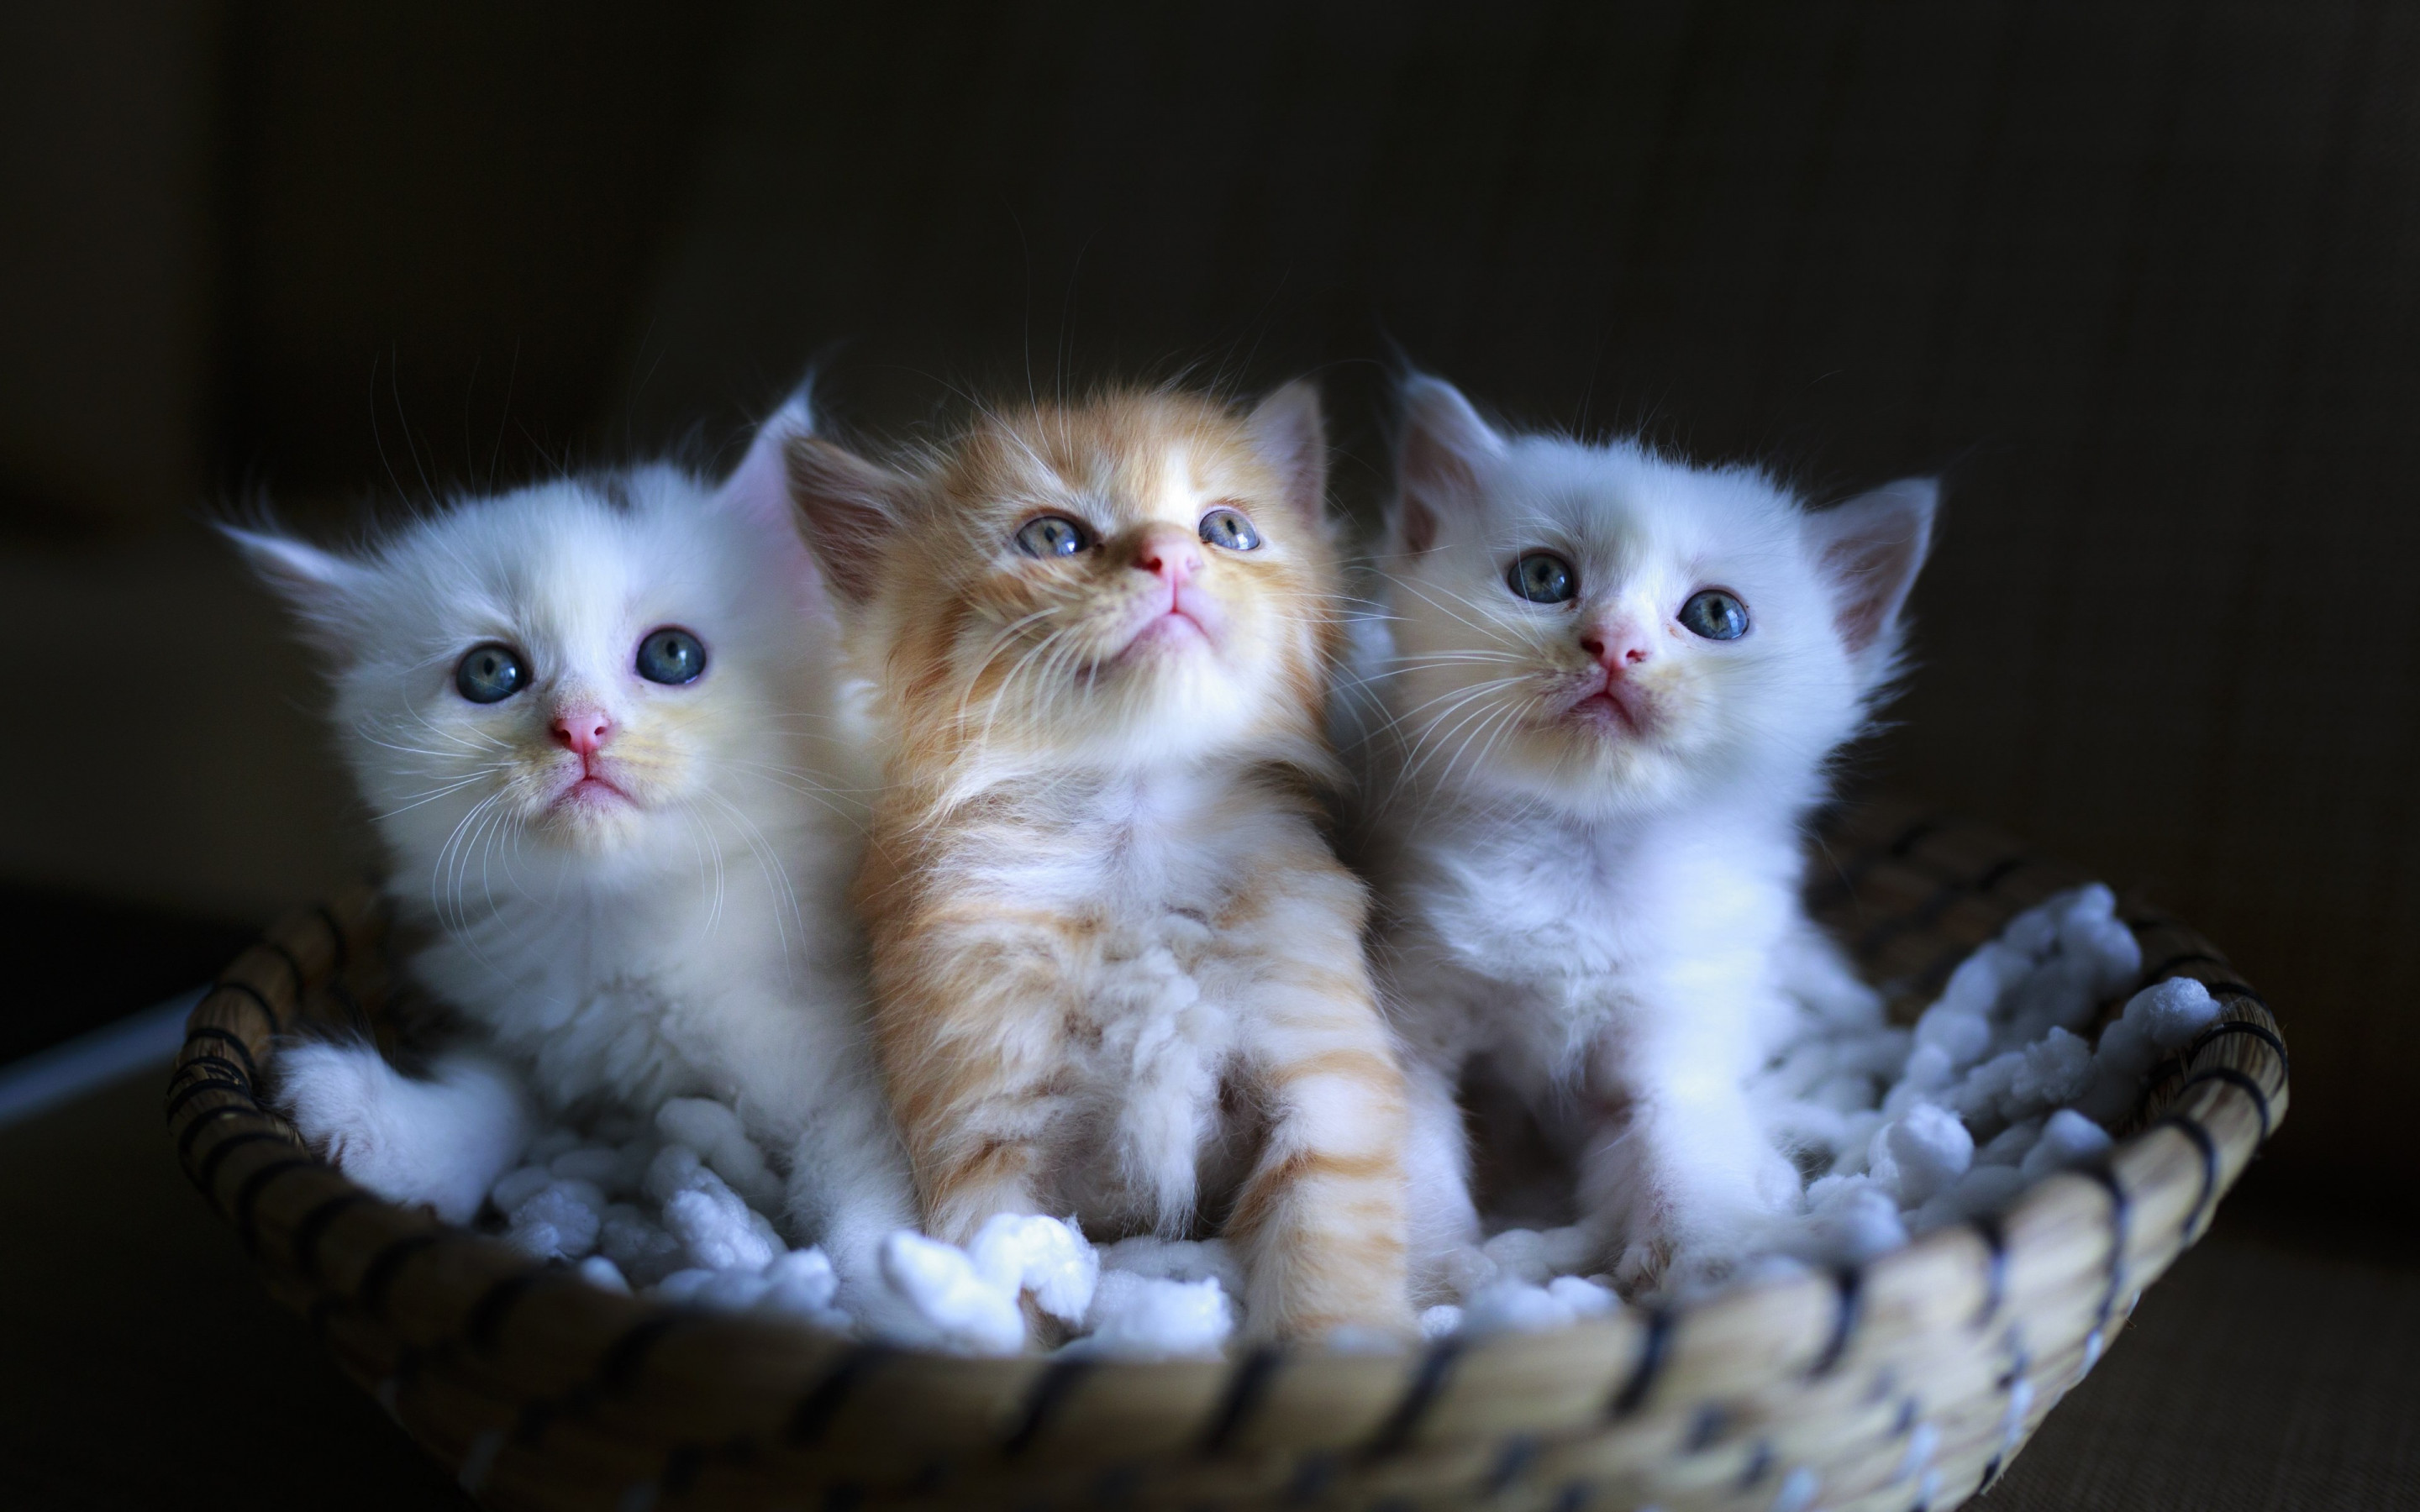 Three cute kittens | 2880x1800 wallpaper